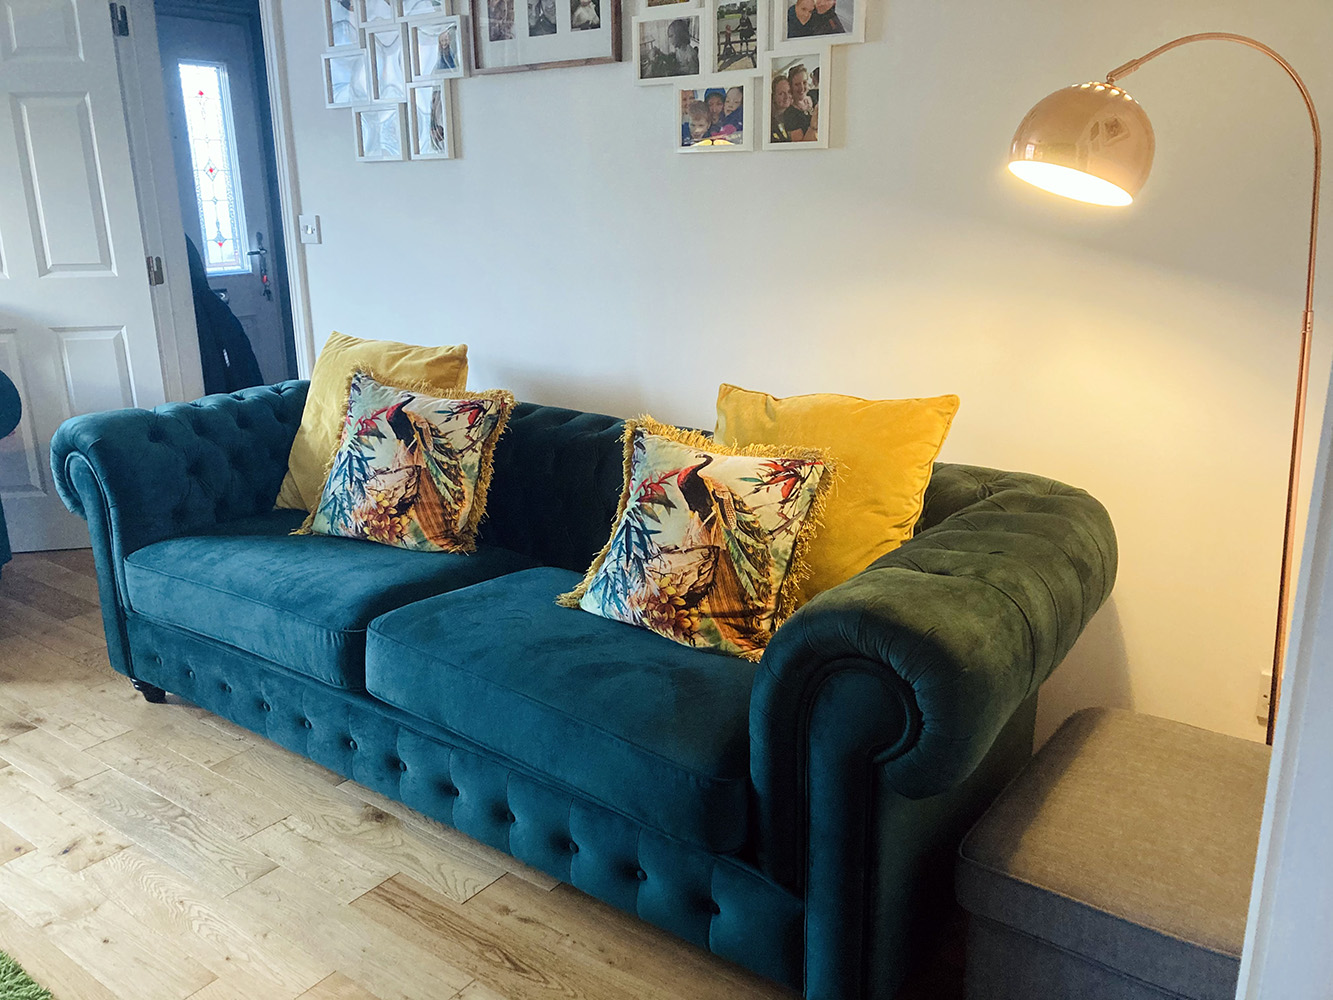 Chesterfield Max Sofa from Naomi